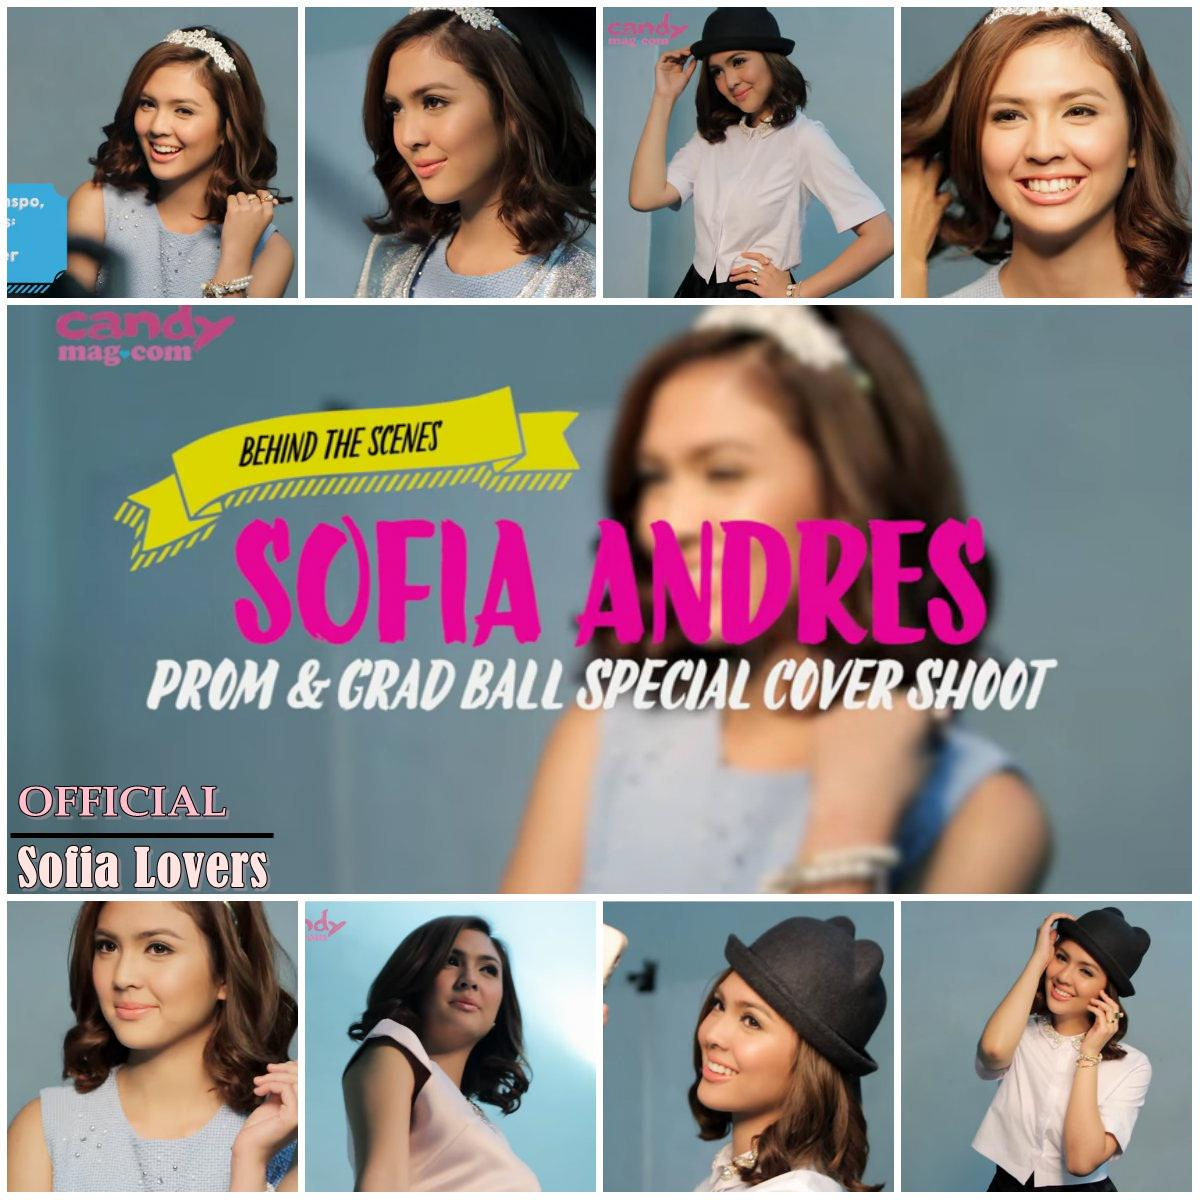 picture Sofia Andres (b. 1998)